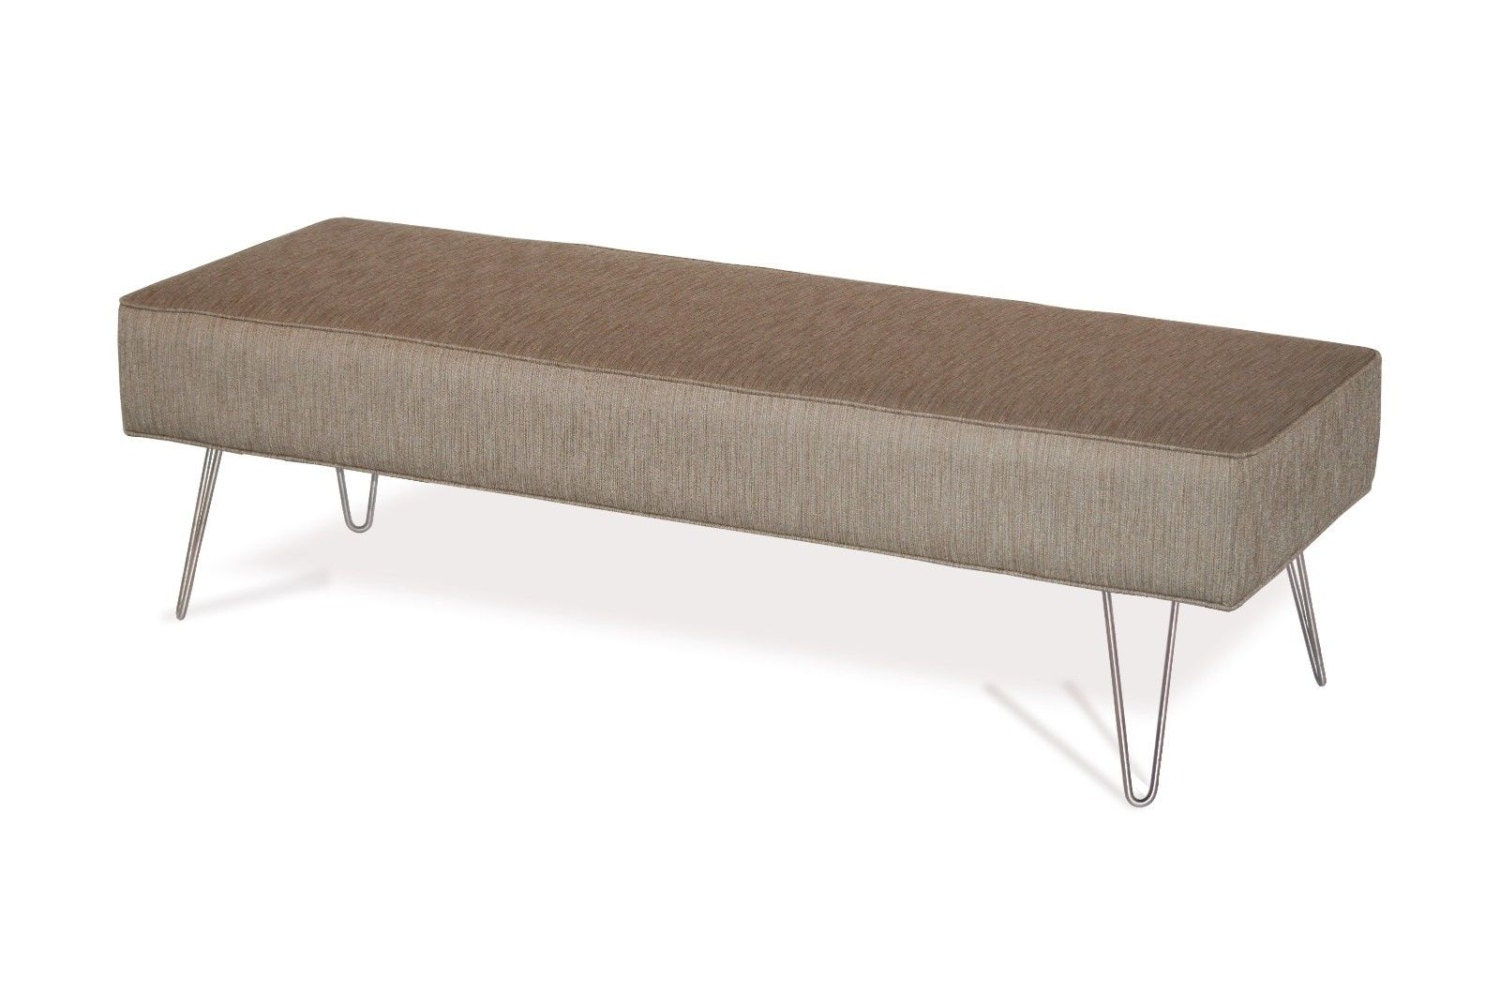 Mid century modern fabric upholstered bench ottoman coffee table Ottoman bench coffee table